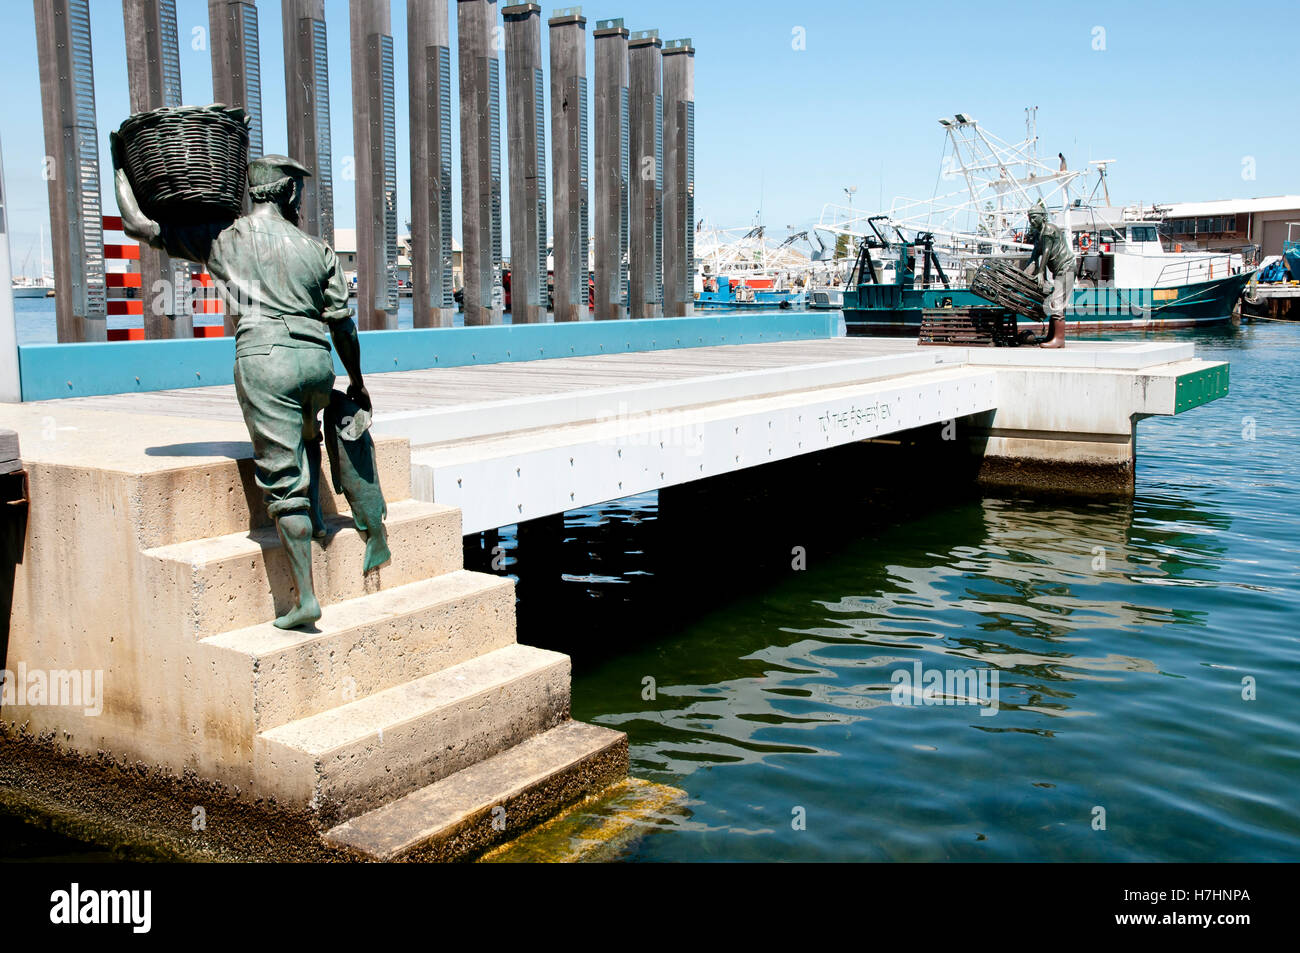 Monument to the Fishermen - Fremantle - Australia - Stock Image